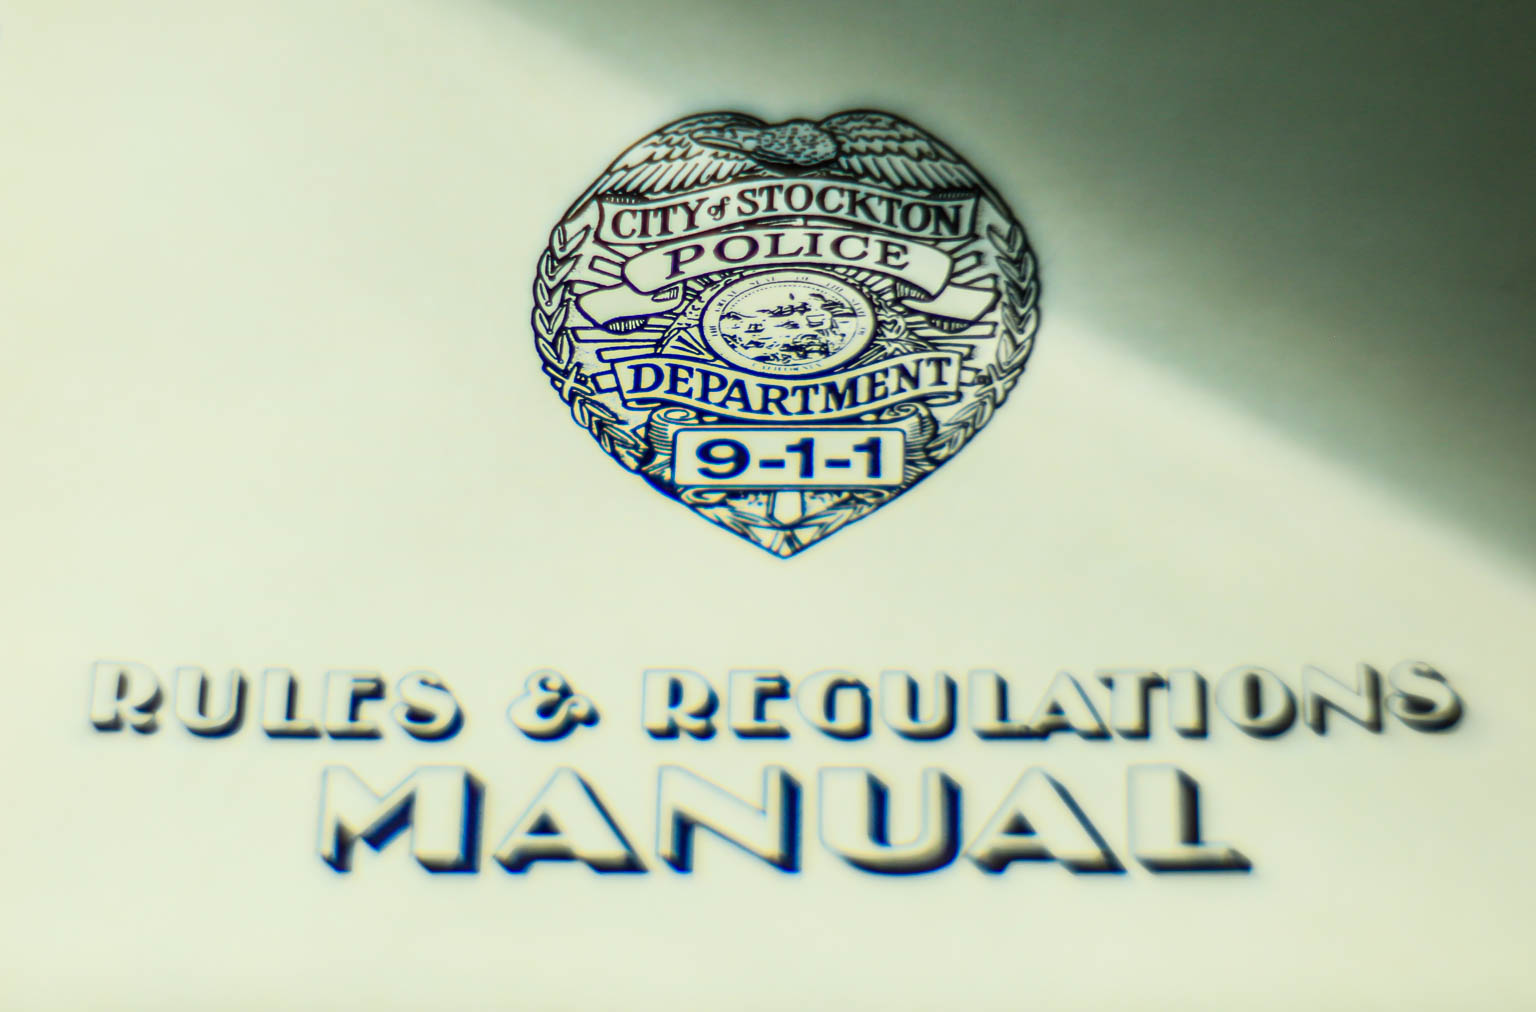 Rules and regulations manual cover